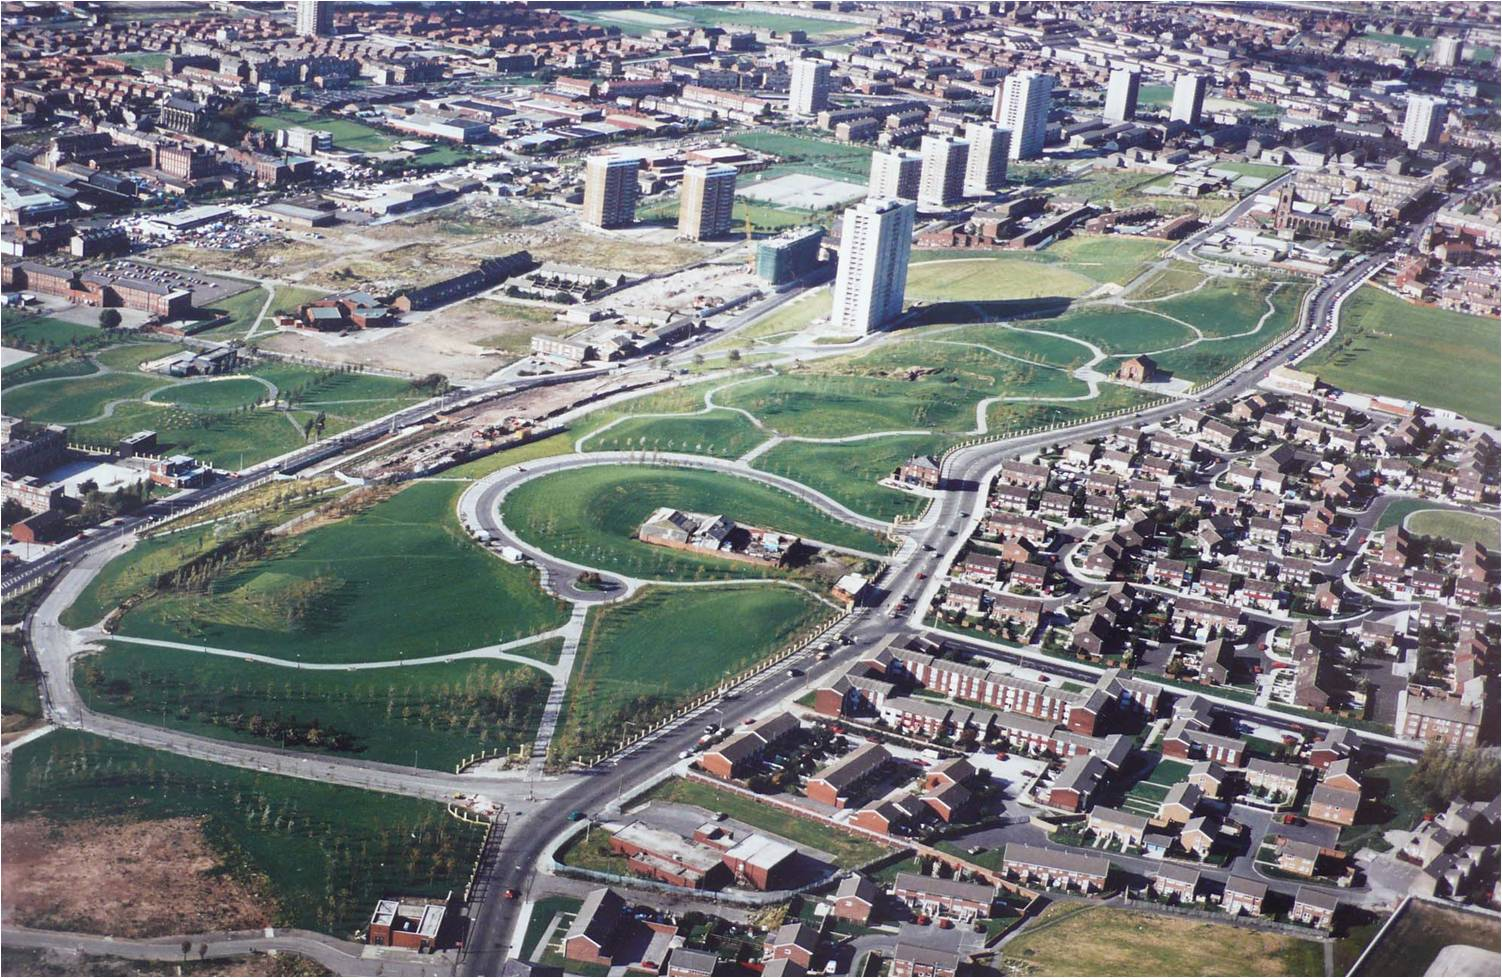 Everton Park when newly laid out - Aerial view c.1990. The park was created on the site of the failed 1960s/70s towers and estates,